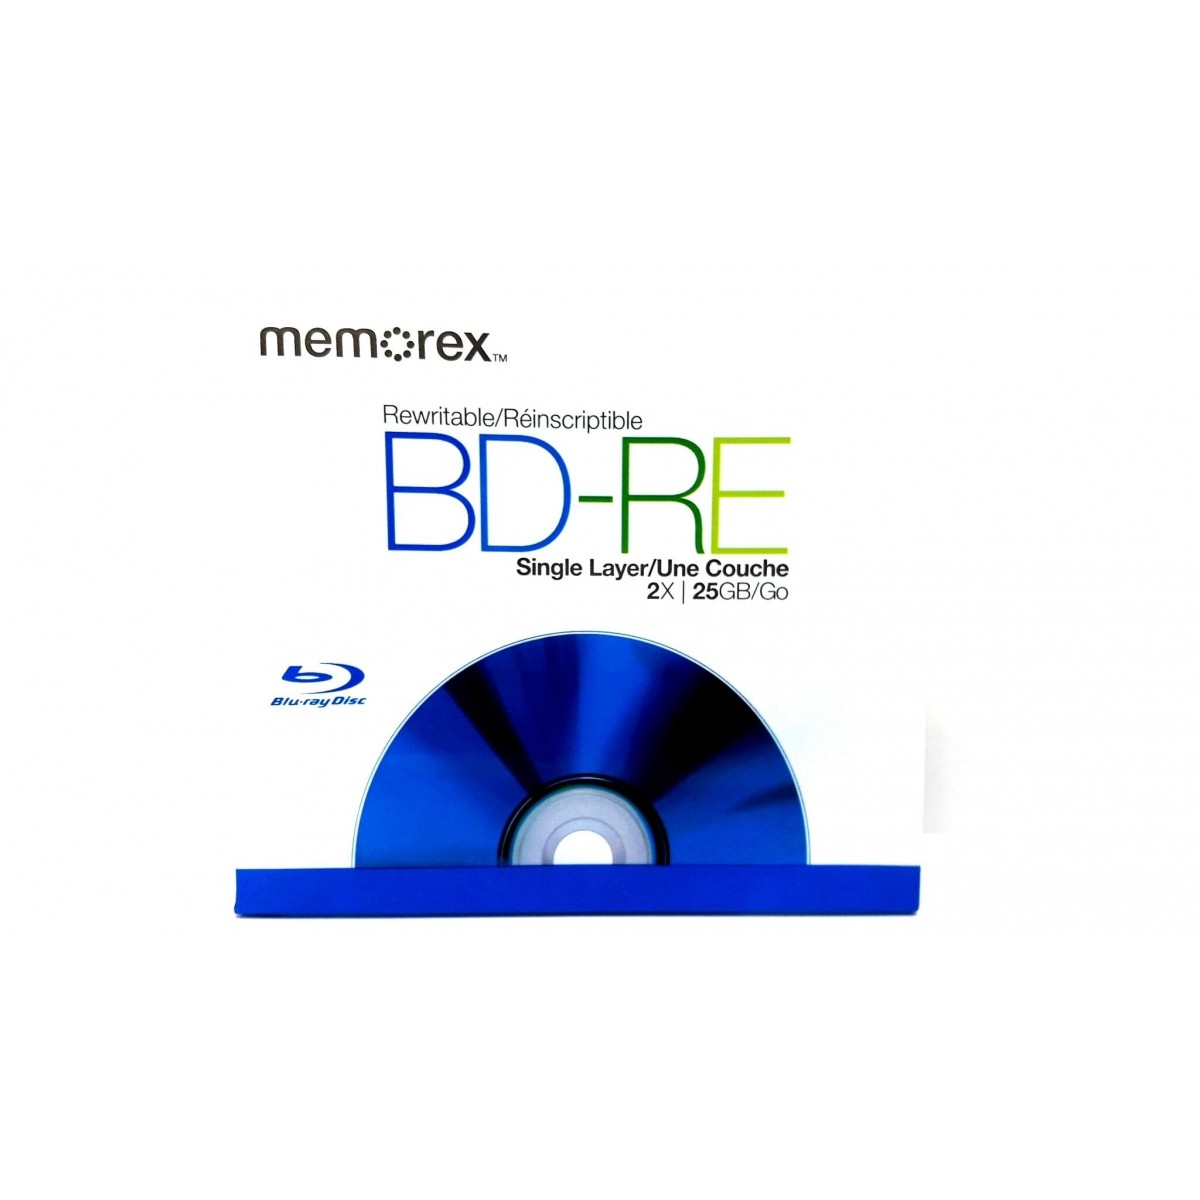 1 Mídia Virgem Bluray Bd-re Regravável Memorex Logo 25gb 135min